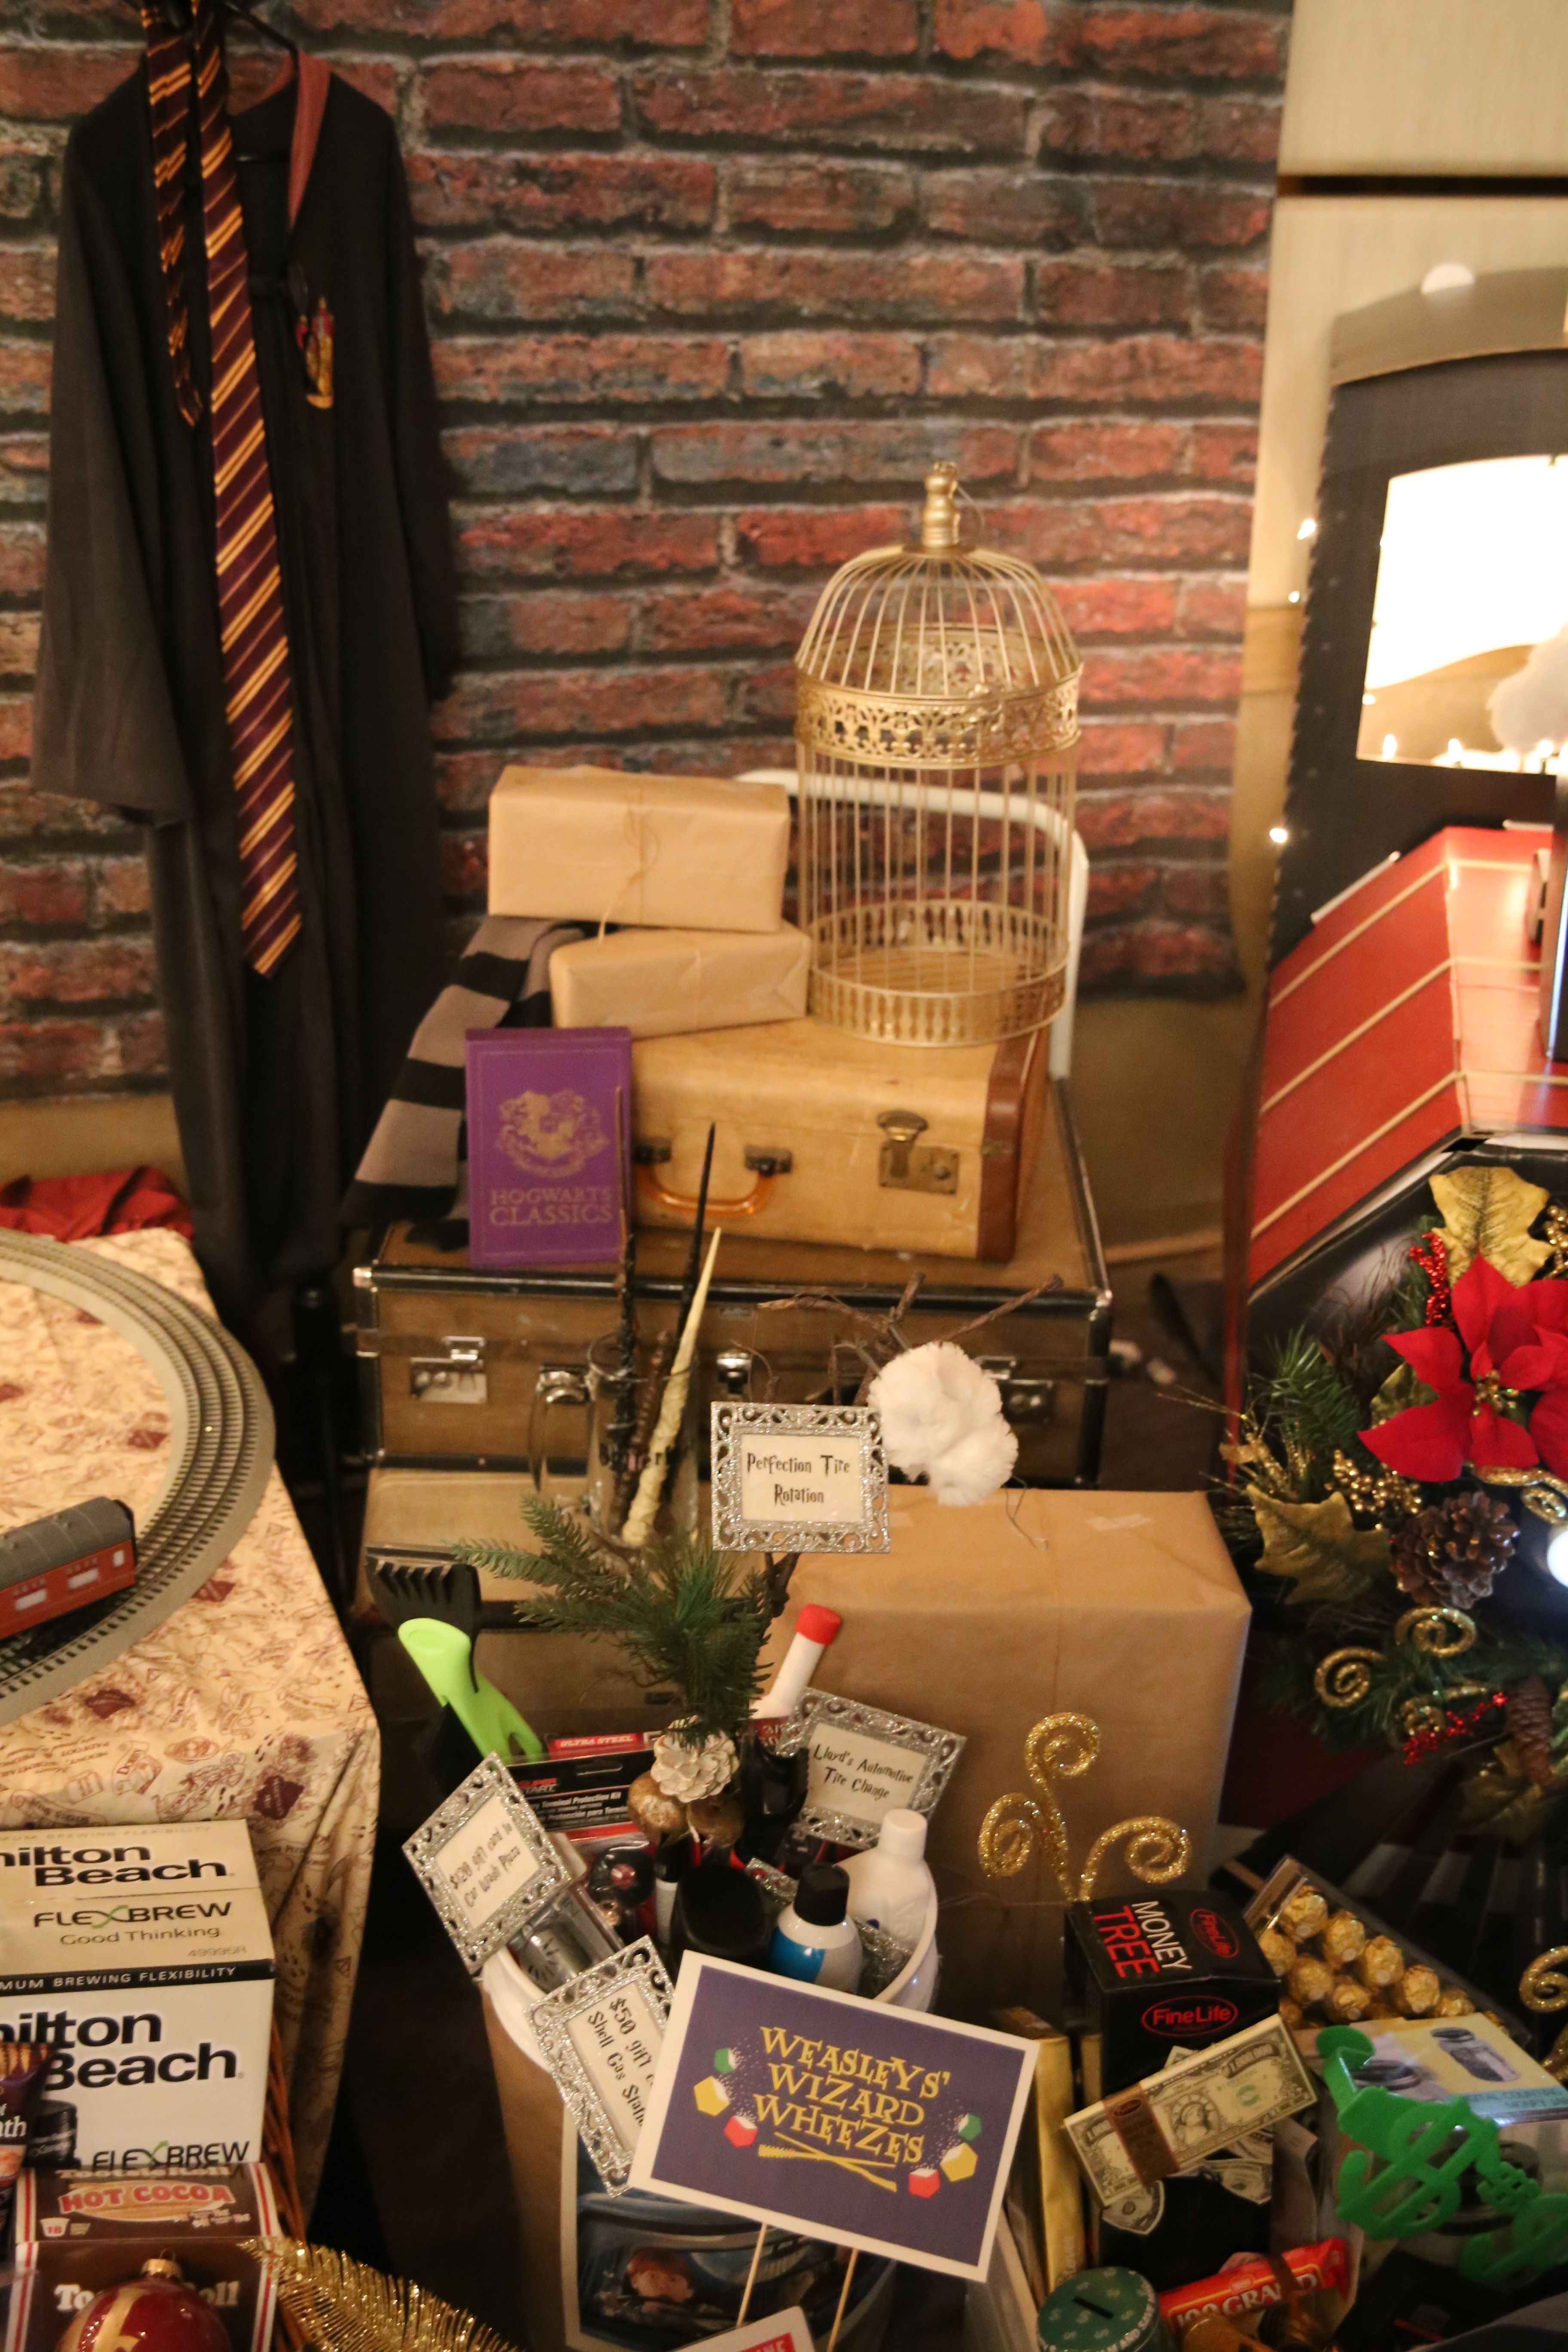 Another View Of The Harry Potter Christmas Display 2017 Festival Of Trees Coeur D Alene Love Those S Christmas Display Harry Potter Christmas Coeur D Alene